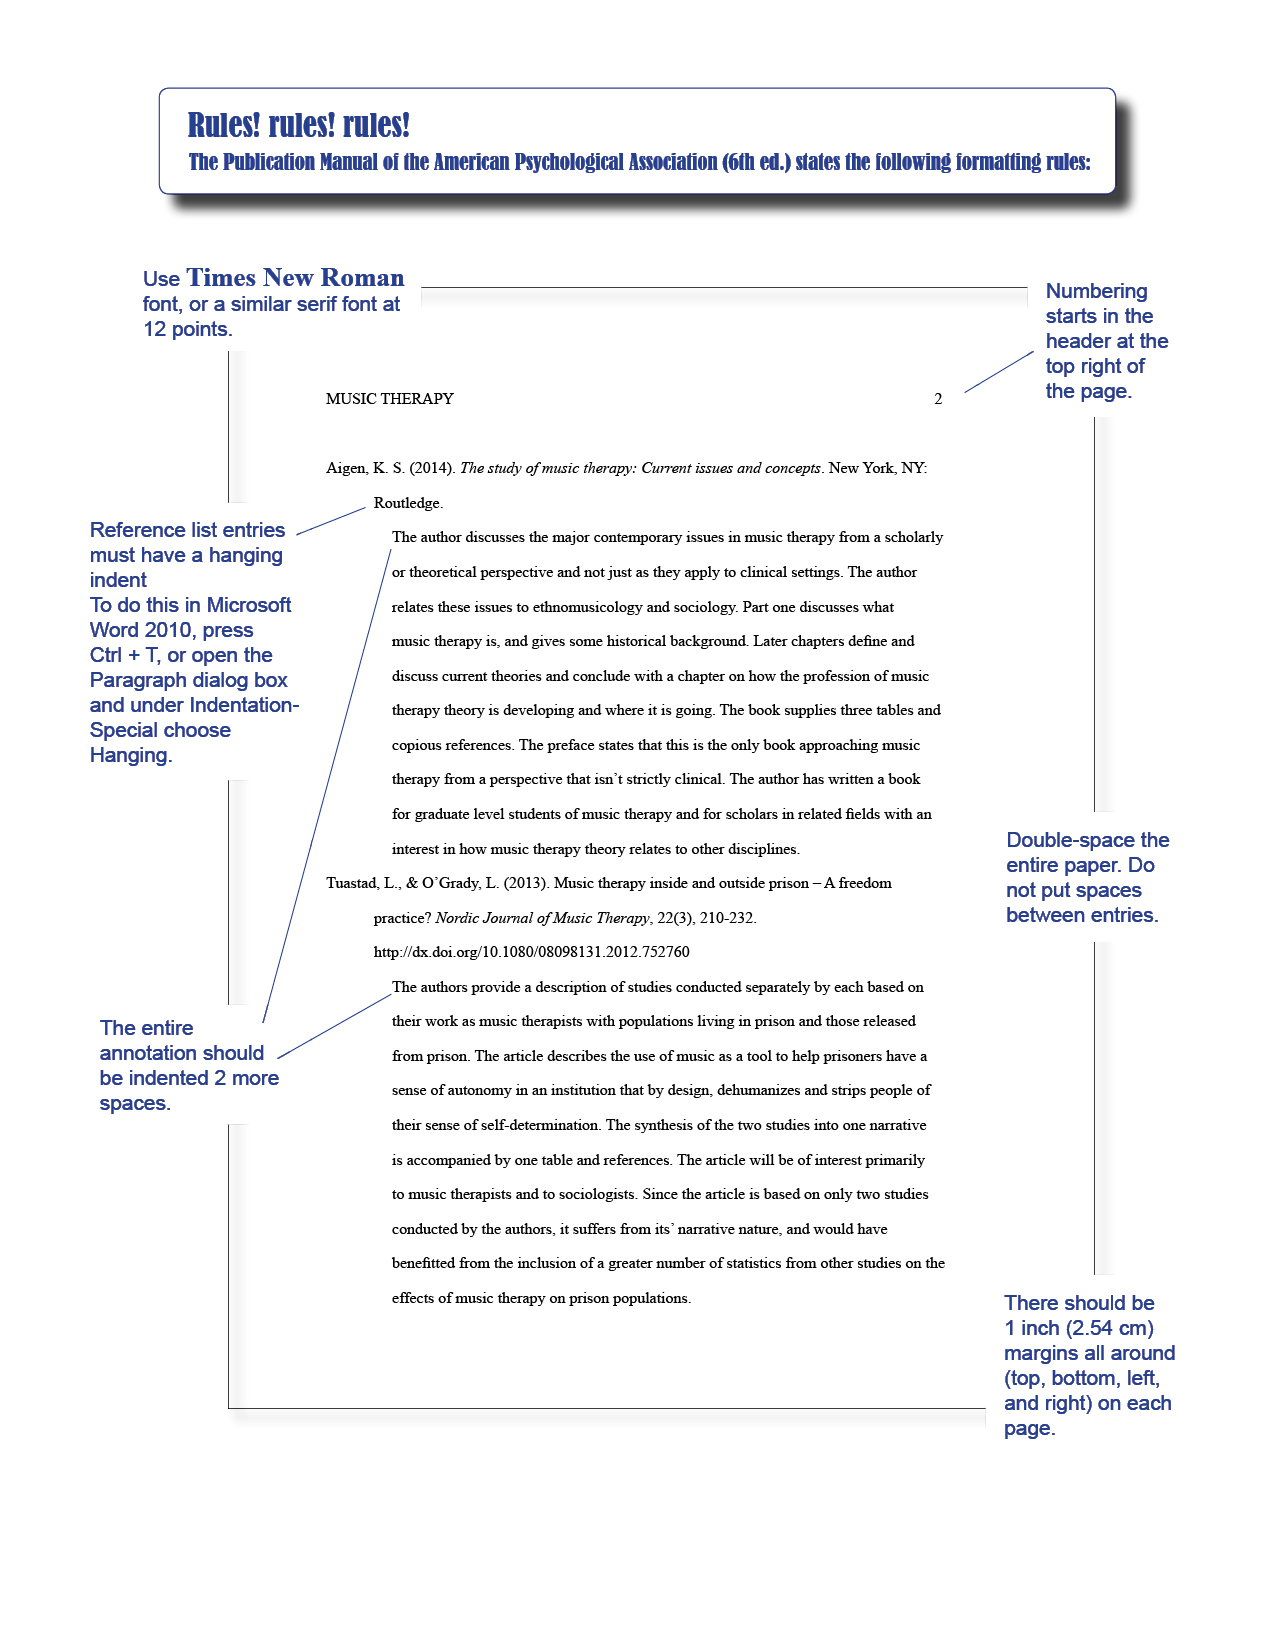 annotated bibliography purdue Argument how can you use this source in your research project has it changed how you think about your topic your annotated bibliography may include some of these.